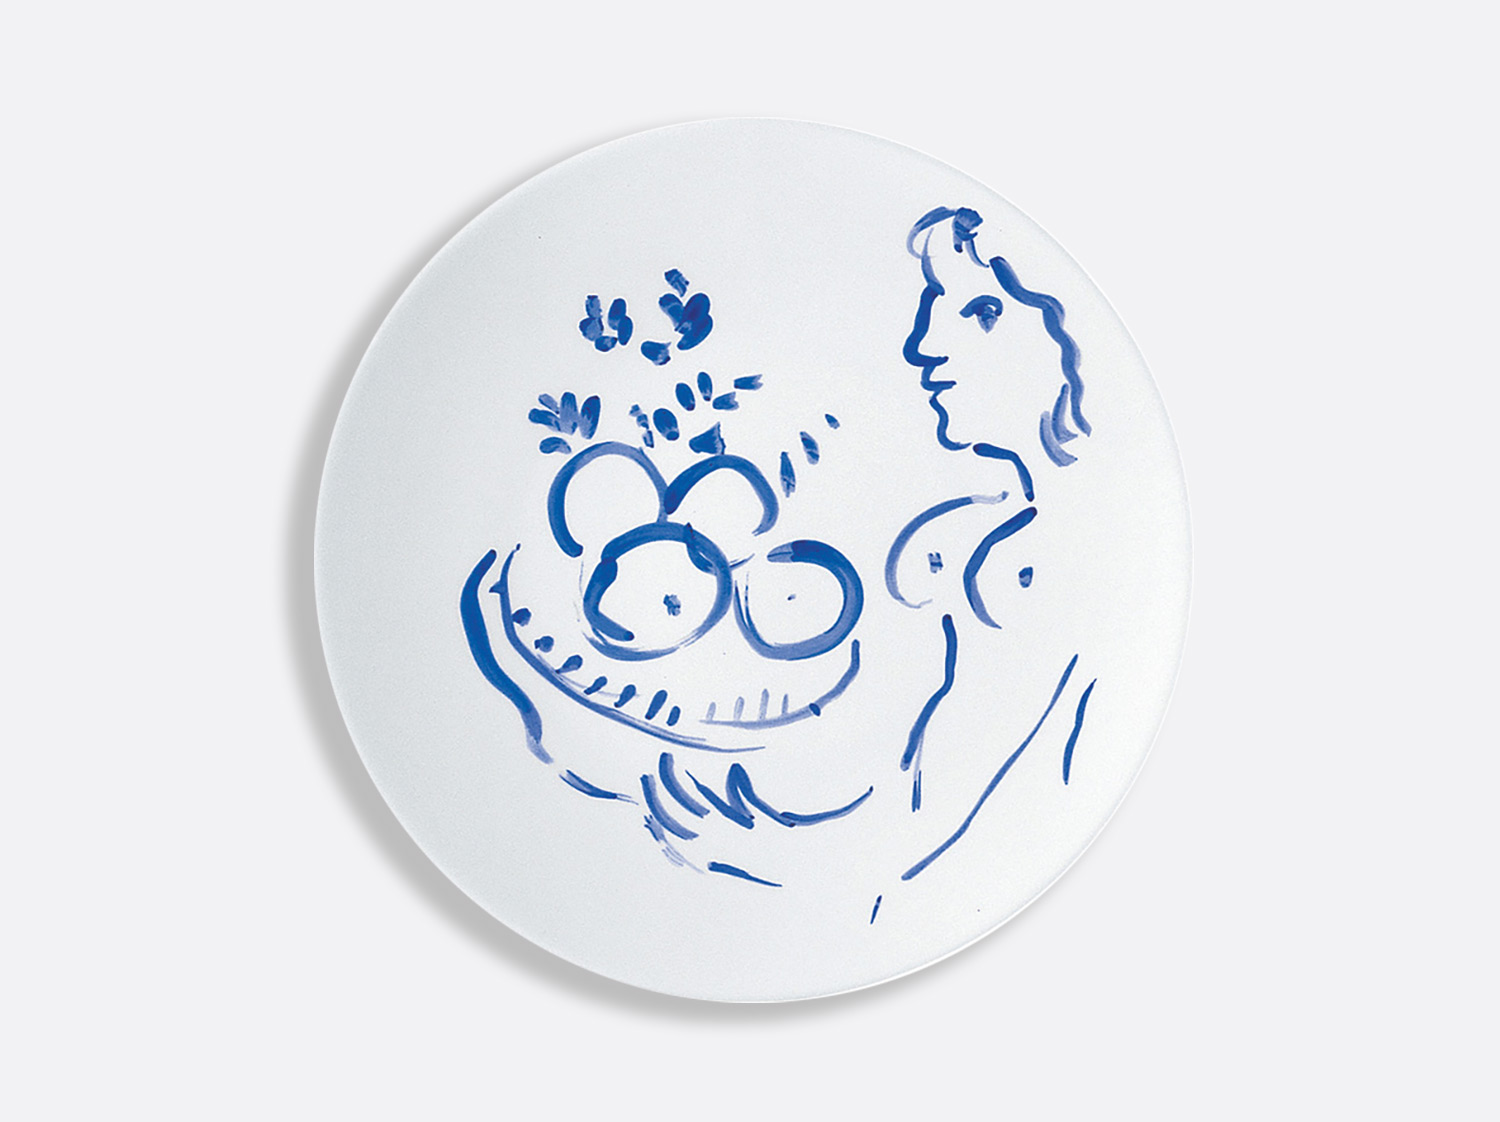 Assiette à diner nu aux fruits 26 cm en porcelaine de la collection Pour ida Bernardaud